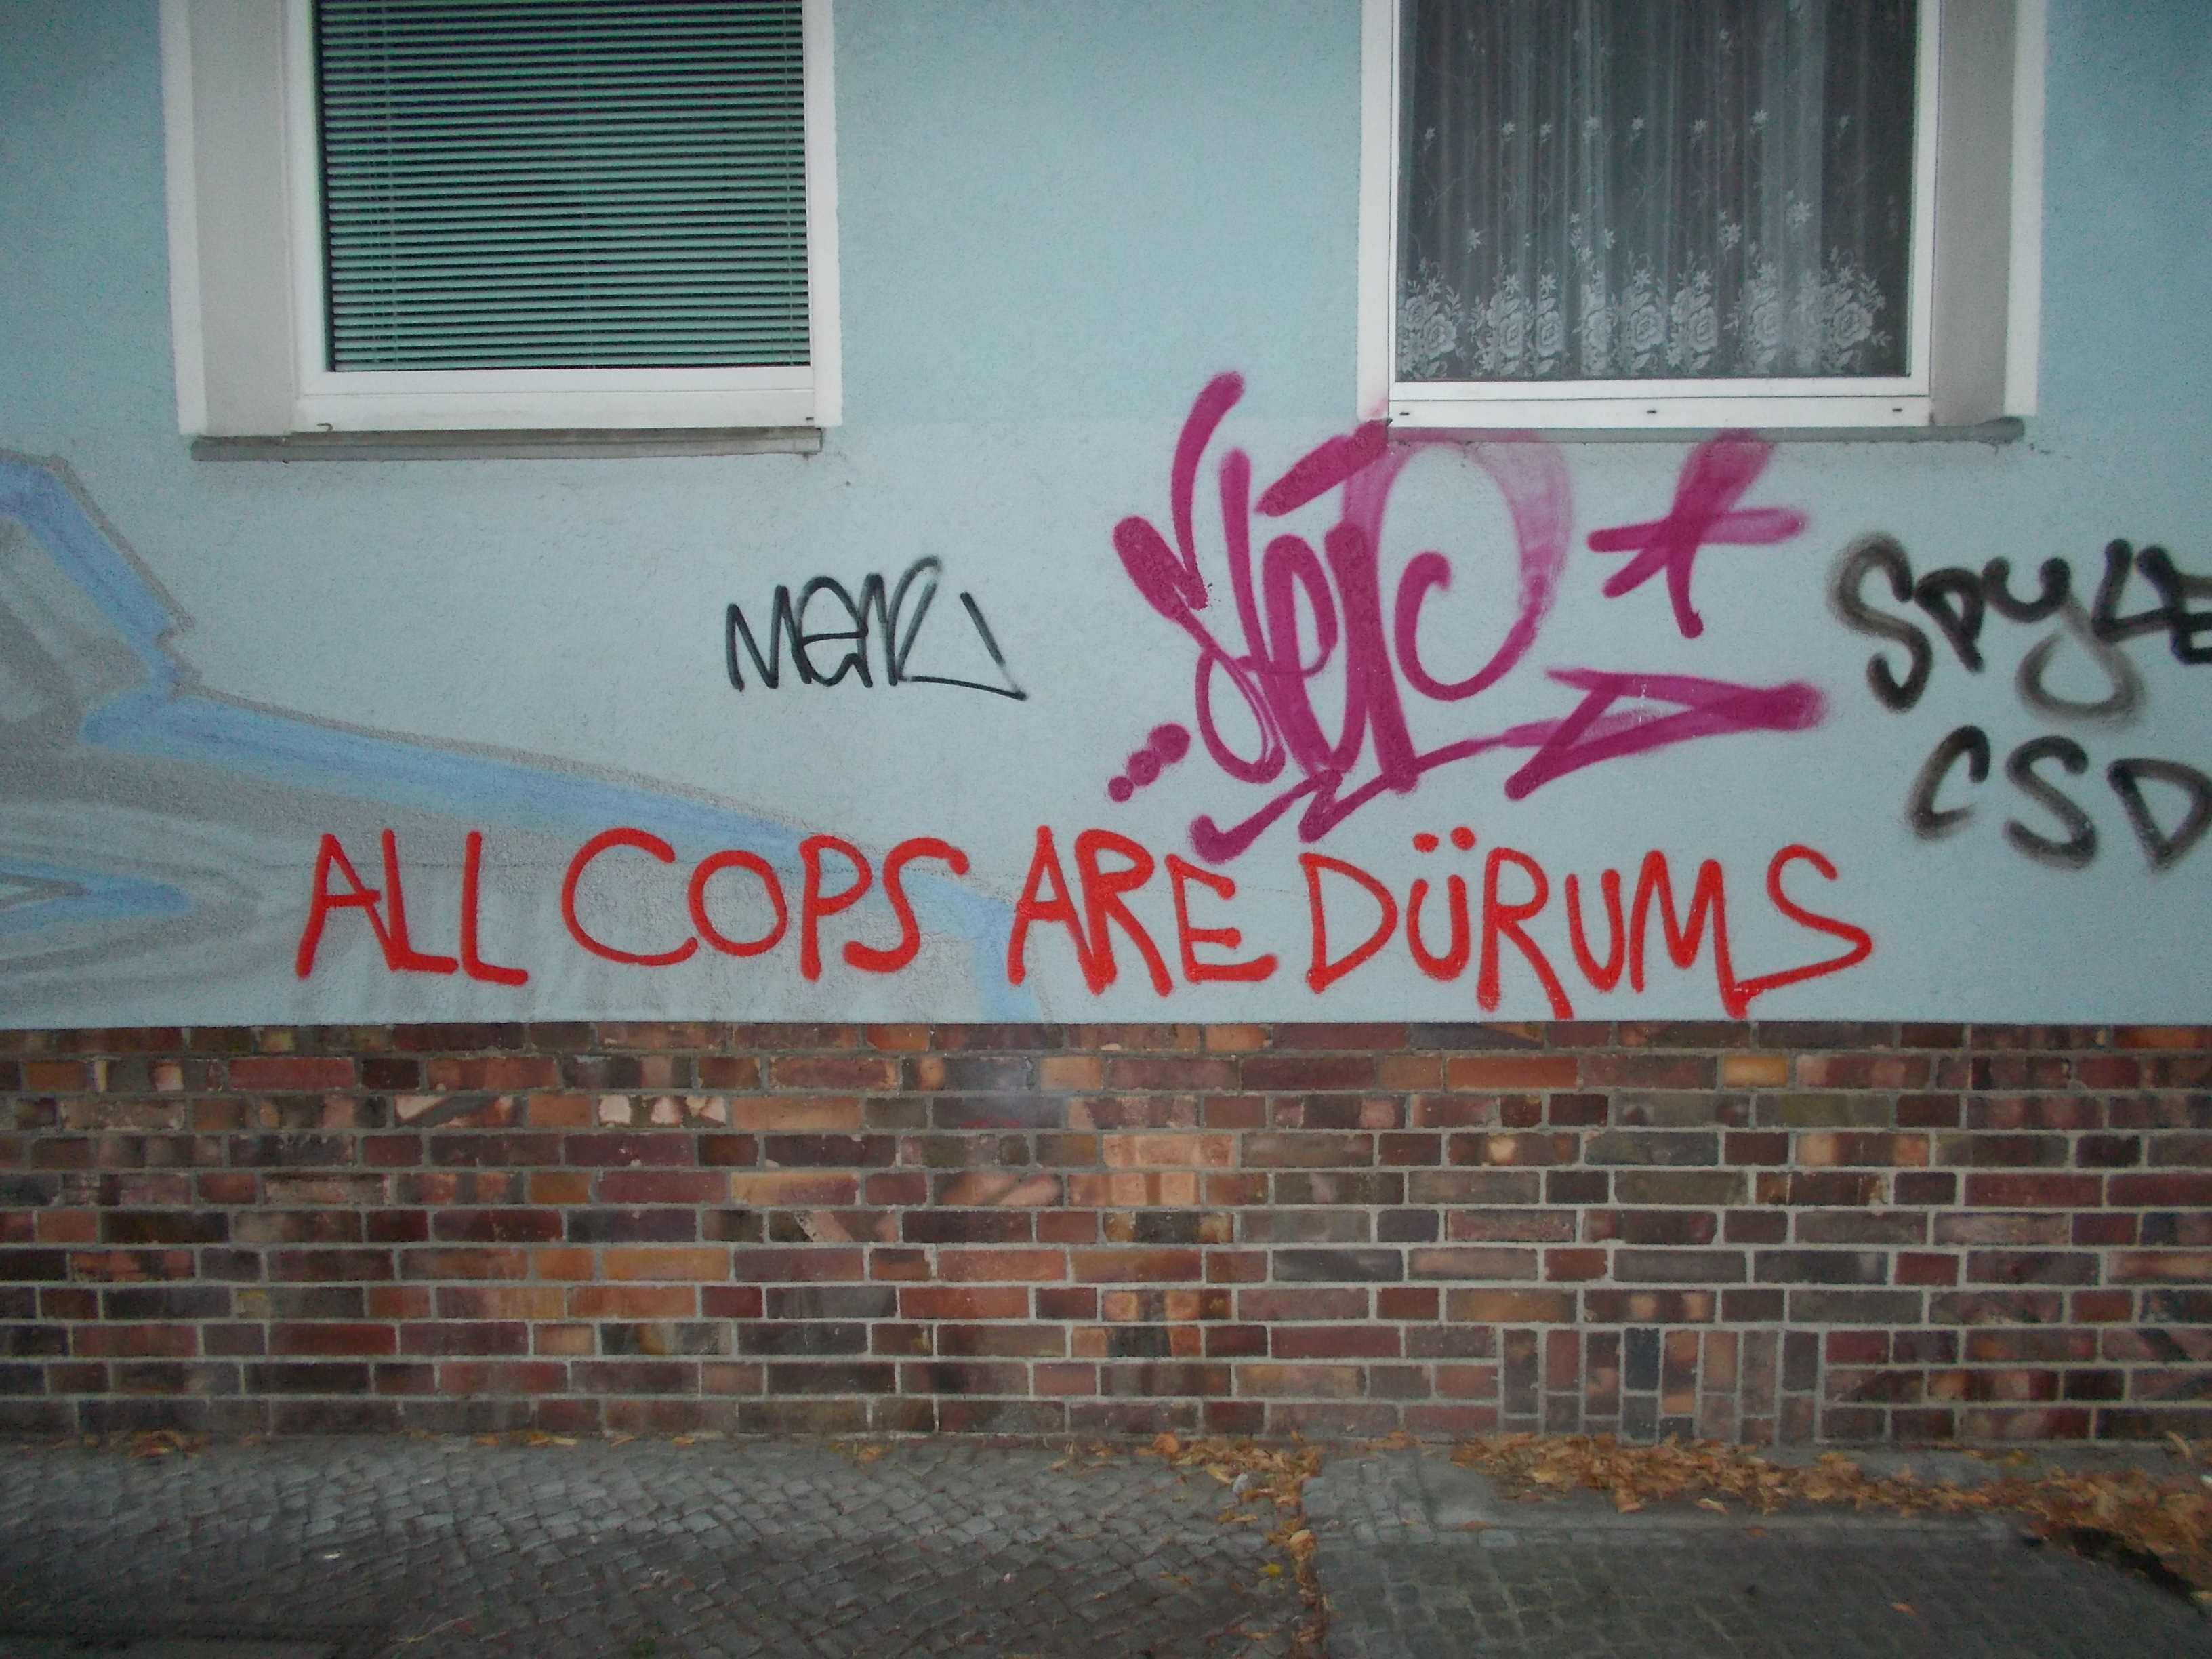 all cops are dürums, Berlin-Neukölln